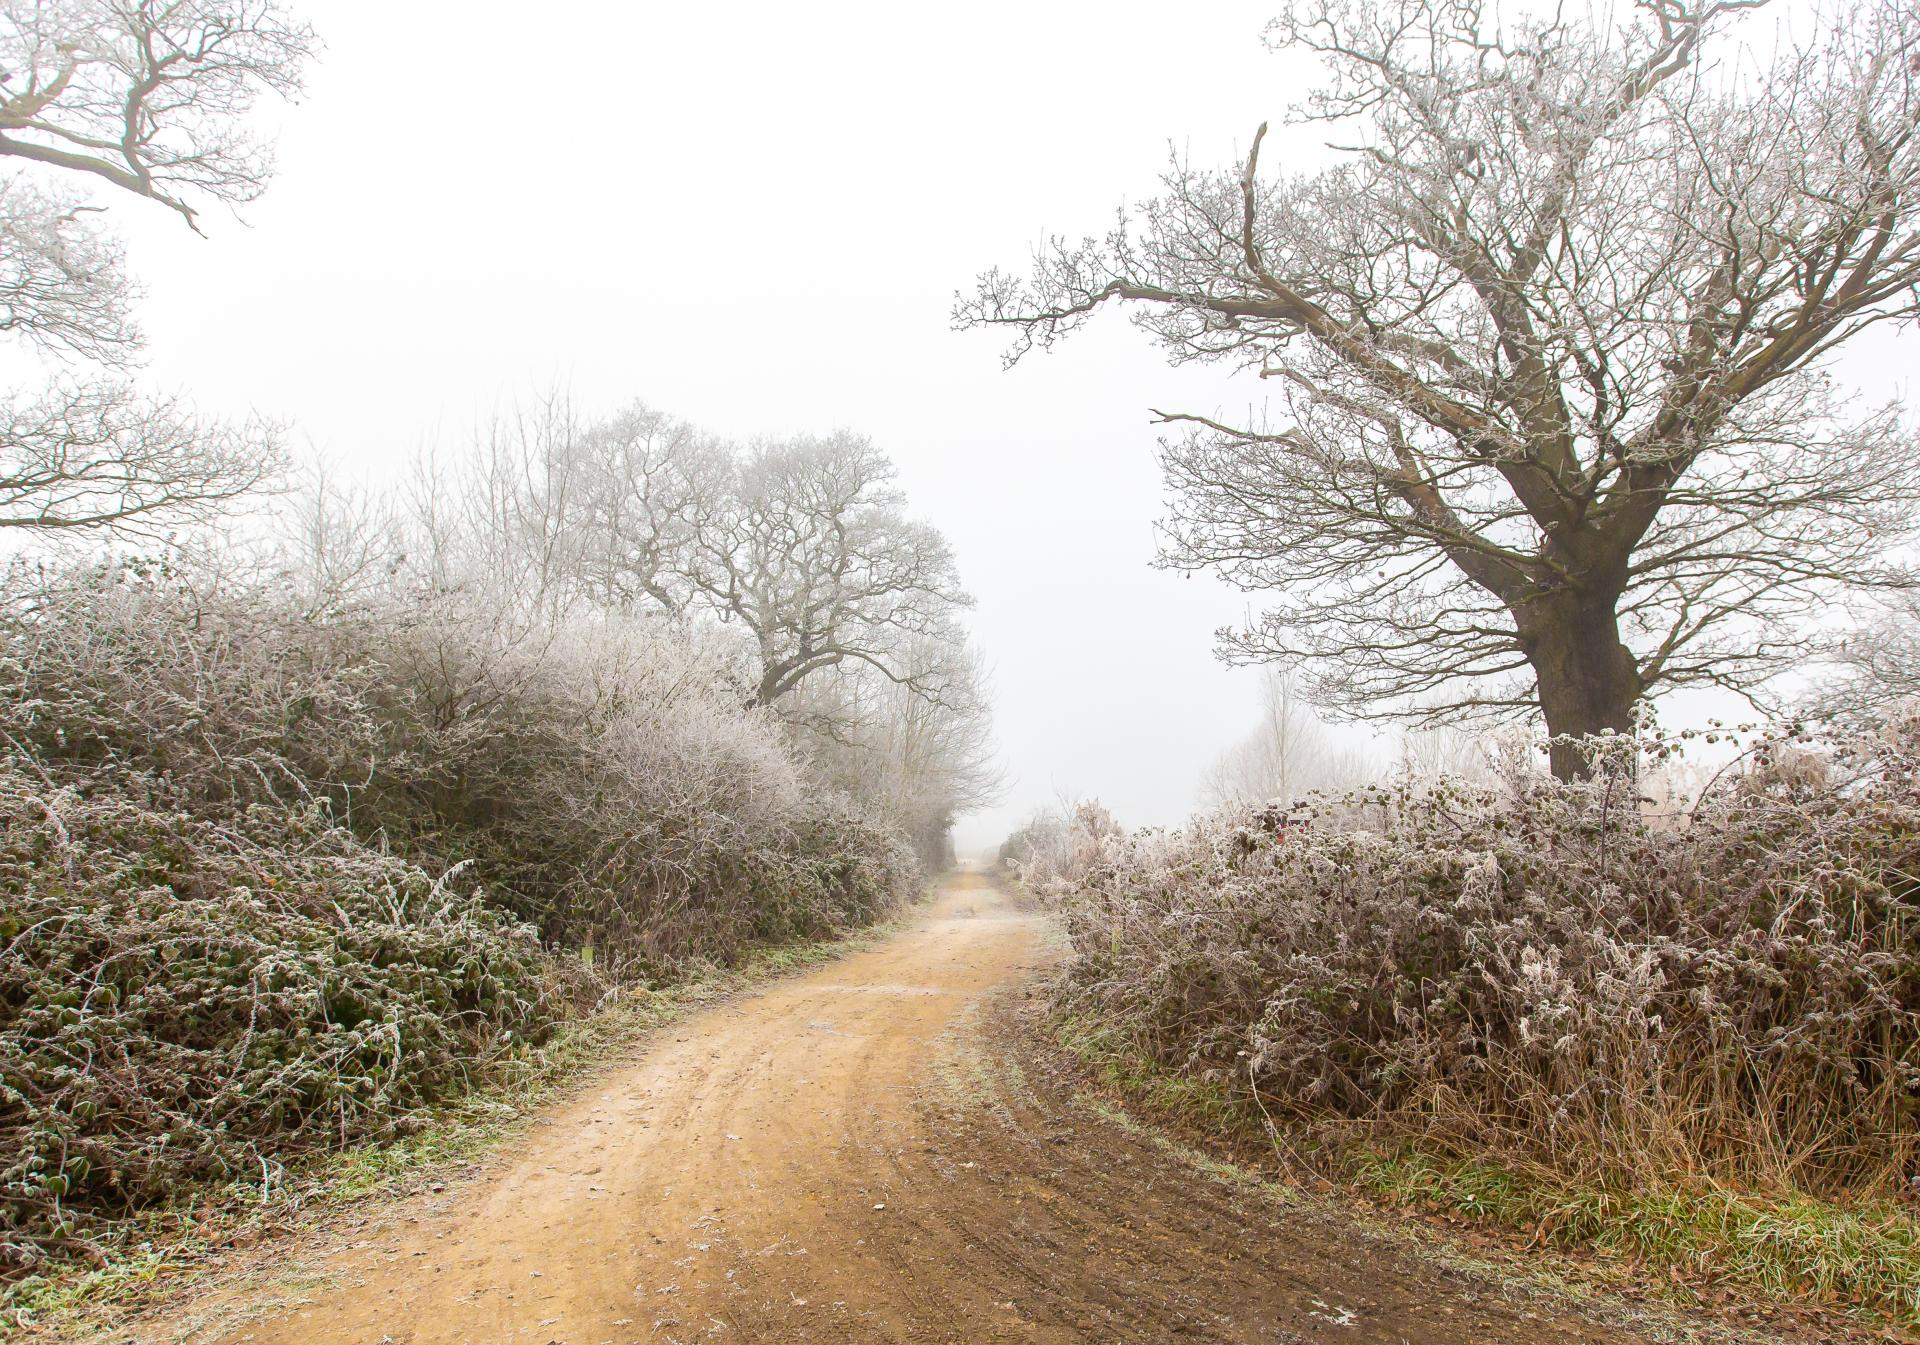 Sandy path winding through frosted trees on a foggy morning at Belhus Woods